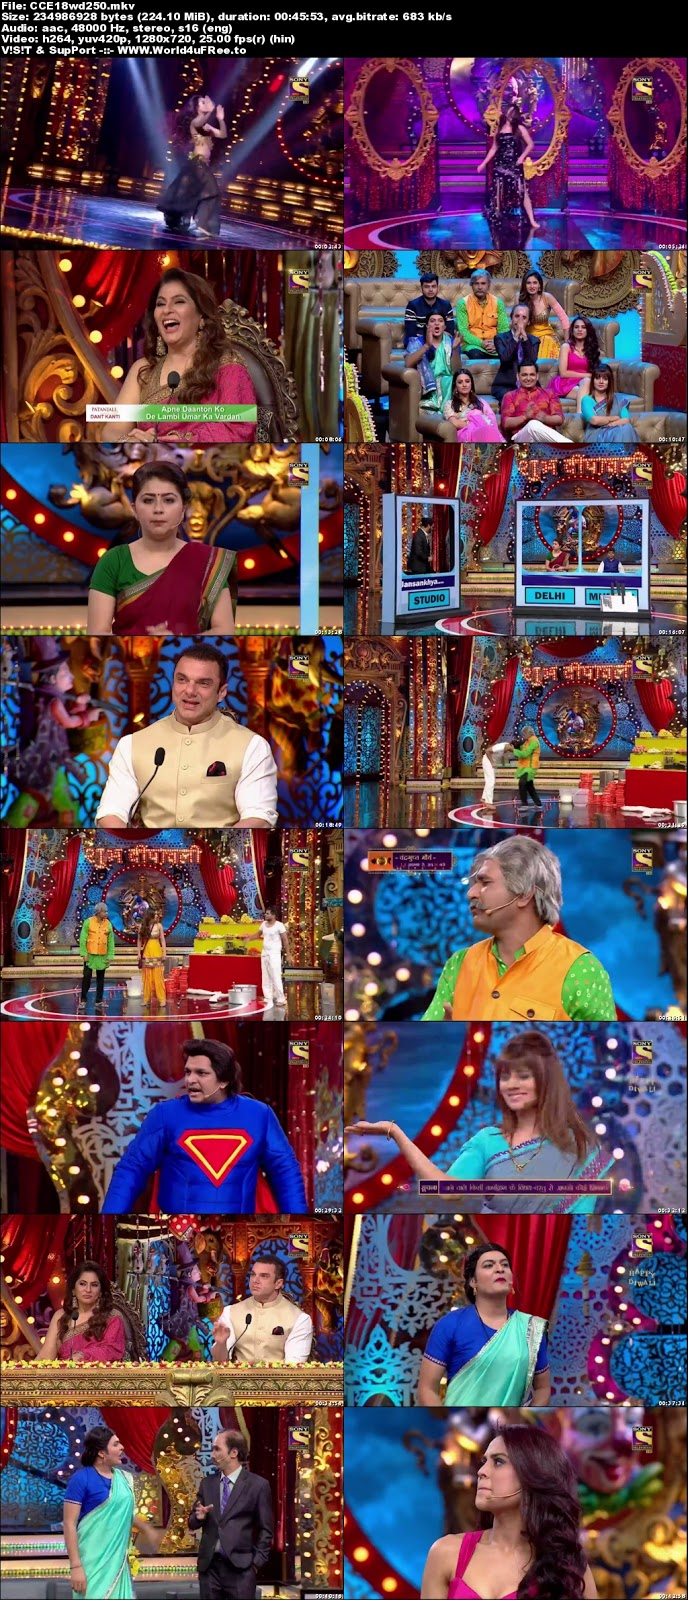 Comedy Circus 2018 Episode 18 720p WEBRip 250mb x264 world4ufree.fun tv show Comedy Circus 2018 hindi tv show Comedy Circus 2018  Season 1 sony tv show compressed small size free download or watch online at world4ufree.fun